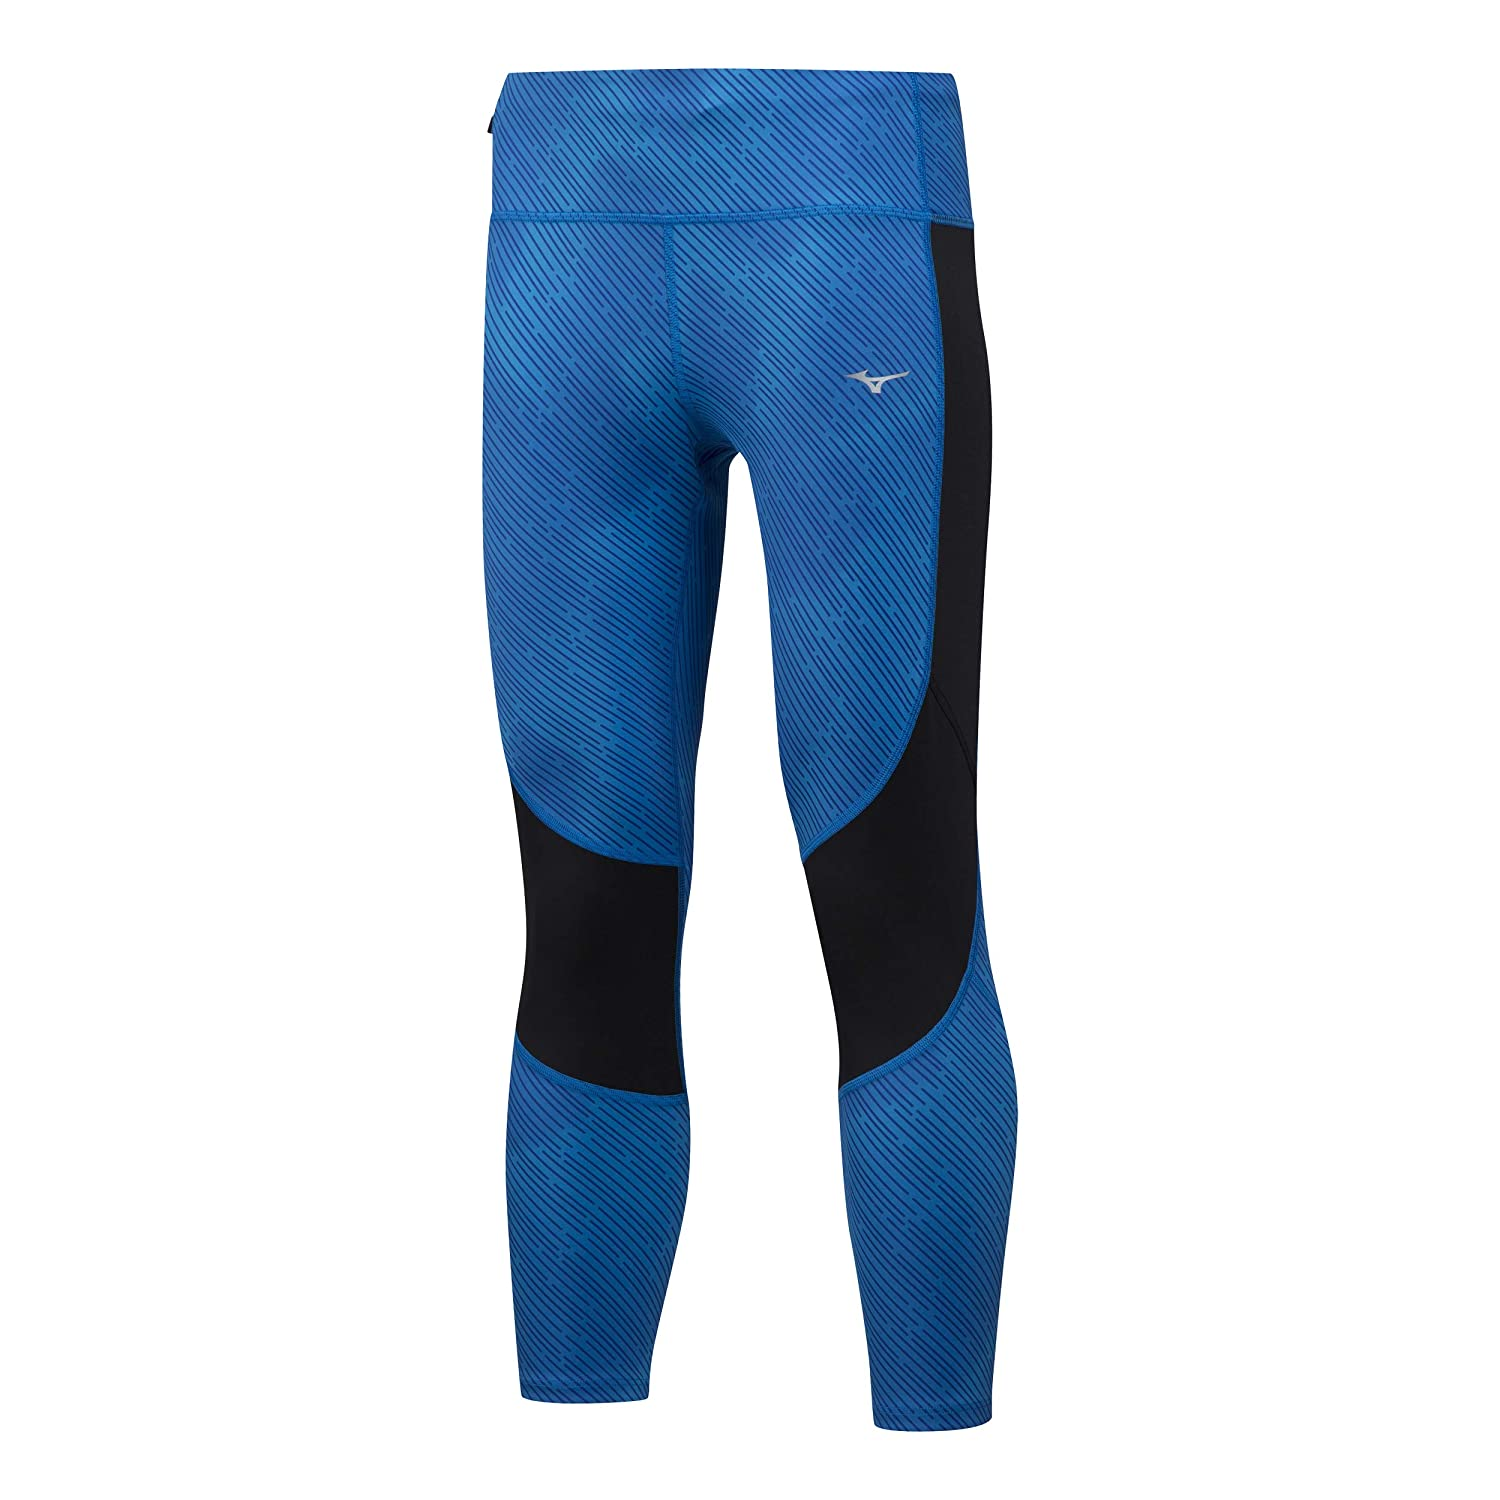 Mizuno Damen Impulse 3/4 Printed Tight Laufbekleidung Tight Blau - Schwarz Xs